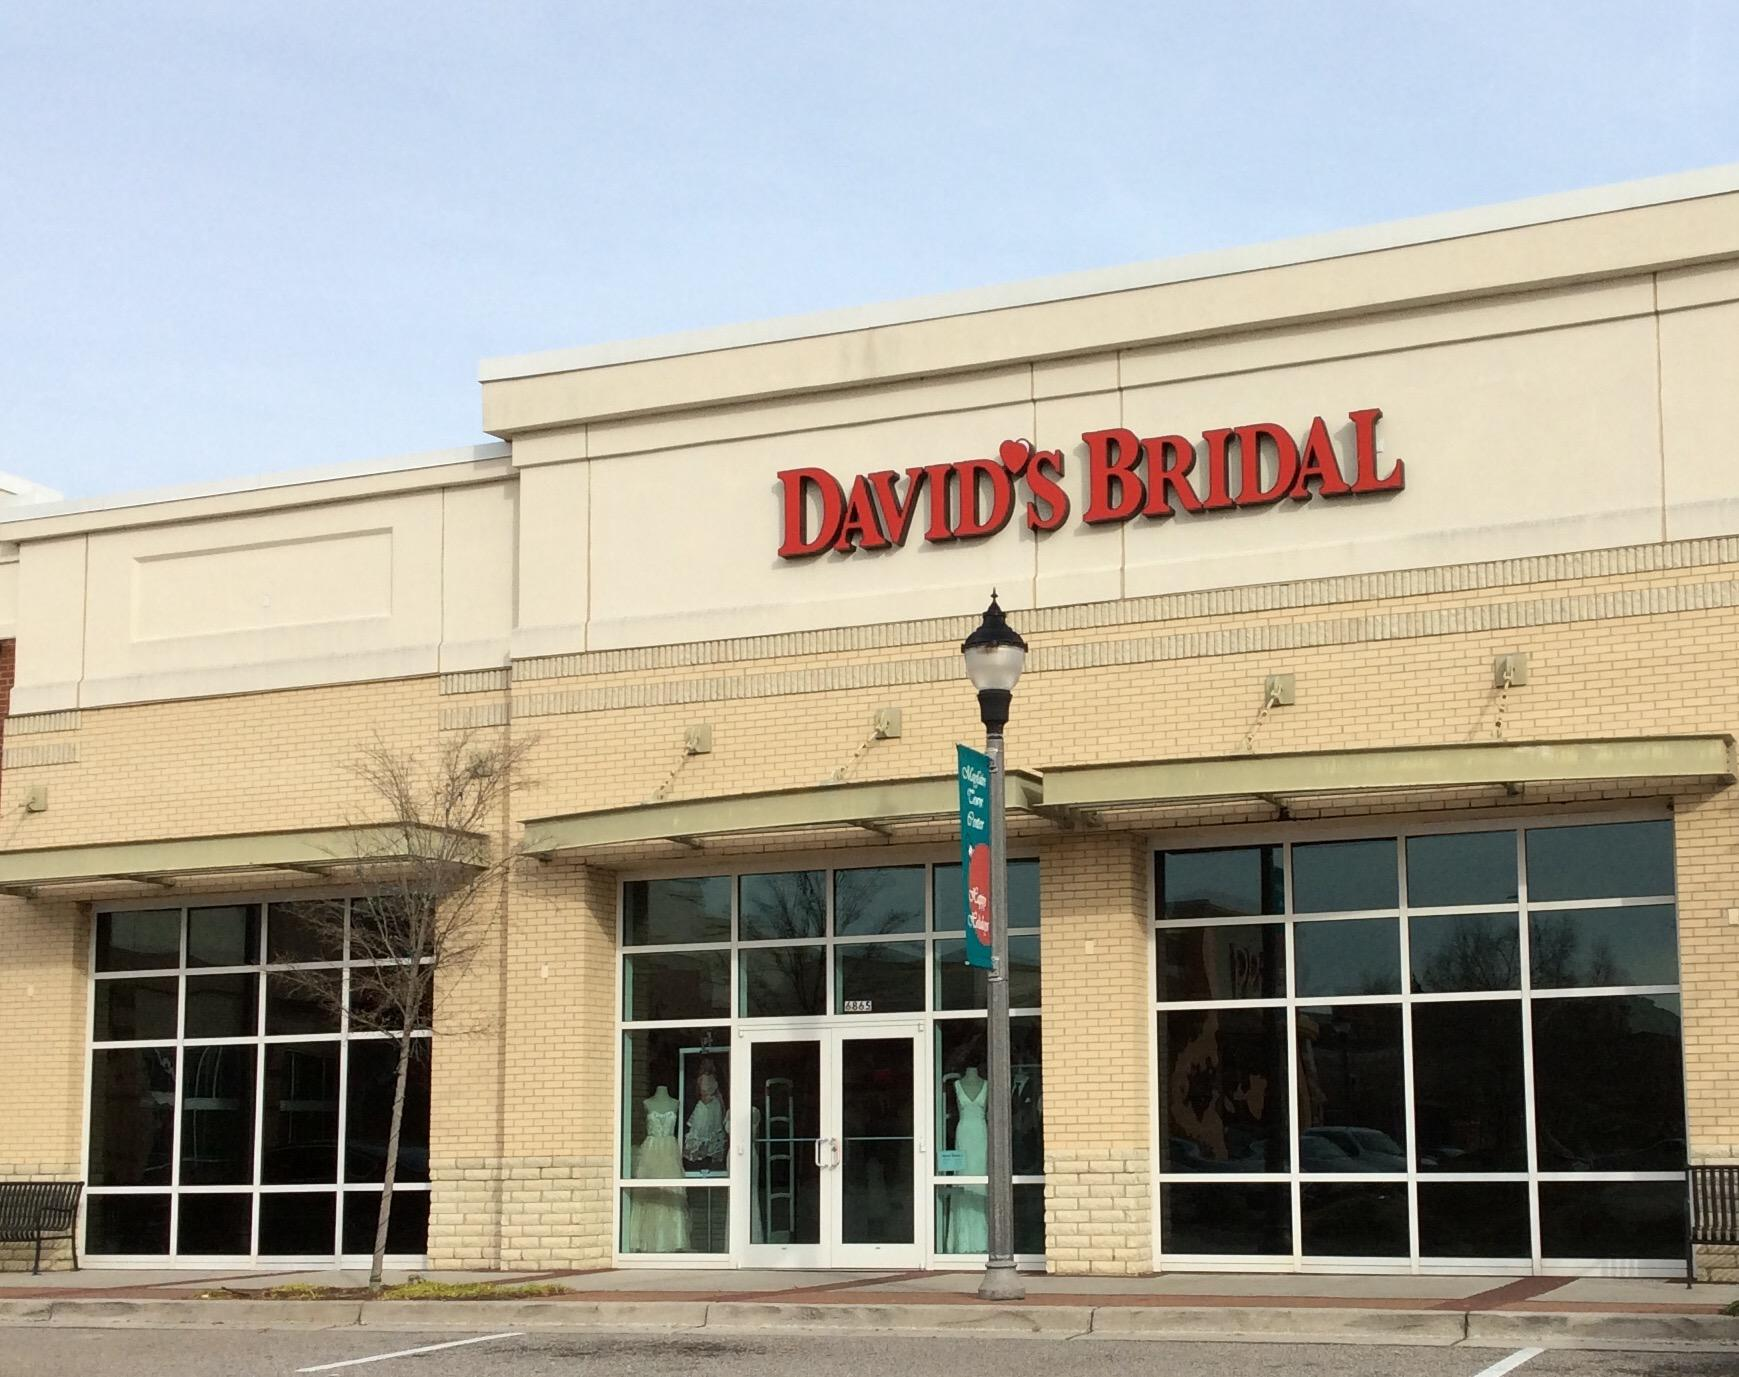 David39s bridal in wilmington nc 910 509 4 for Wedding dress shops in wilmington nc